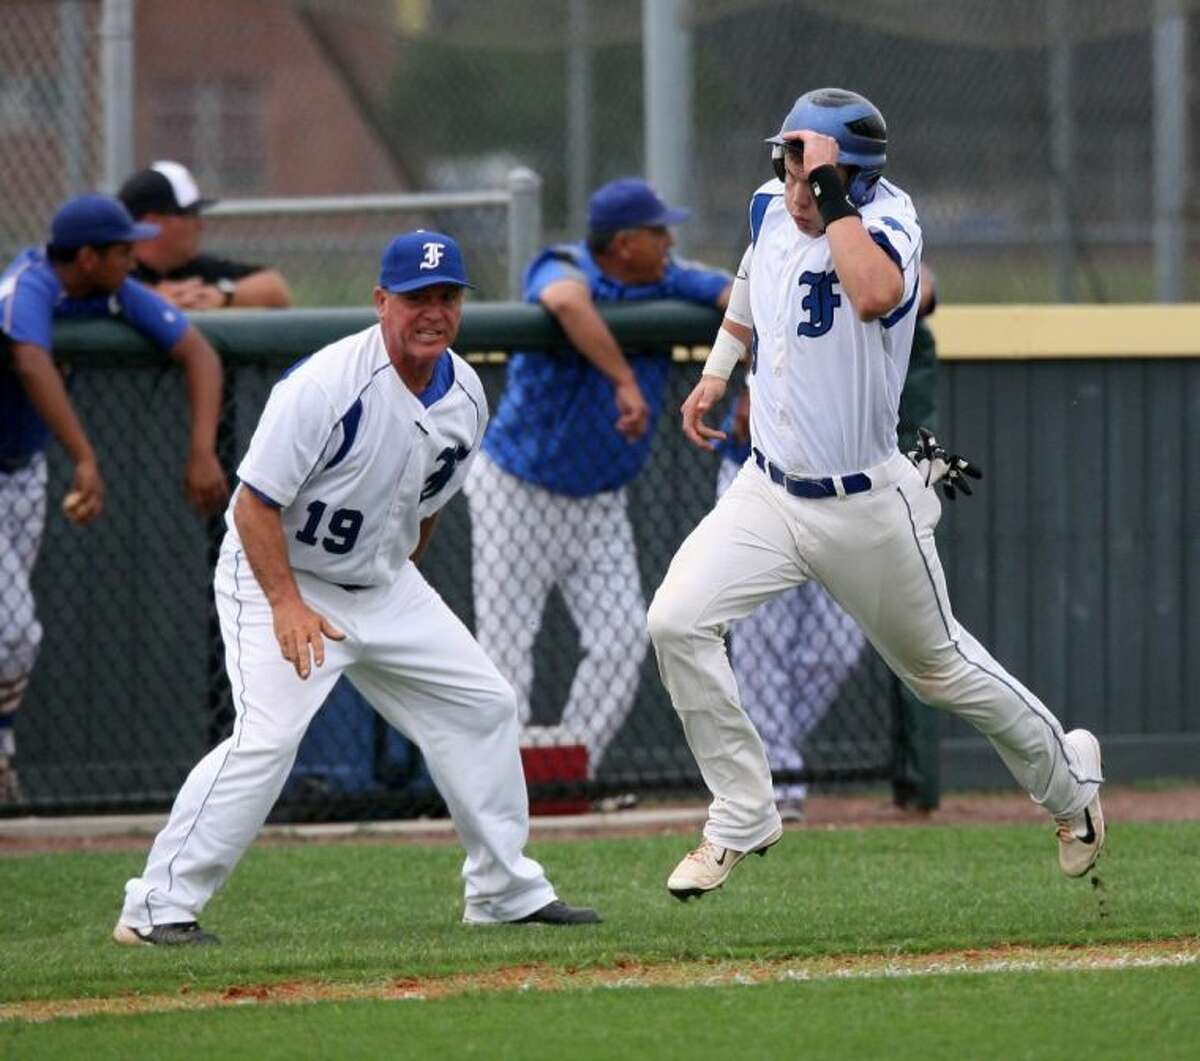 Friendswood baseball coach Charlie Taylor tells Walker Williams to get moving as he sends him to home plate Friday against Houston Milby.